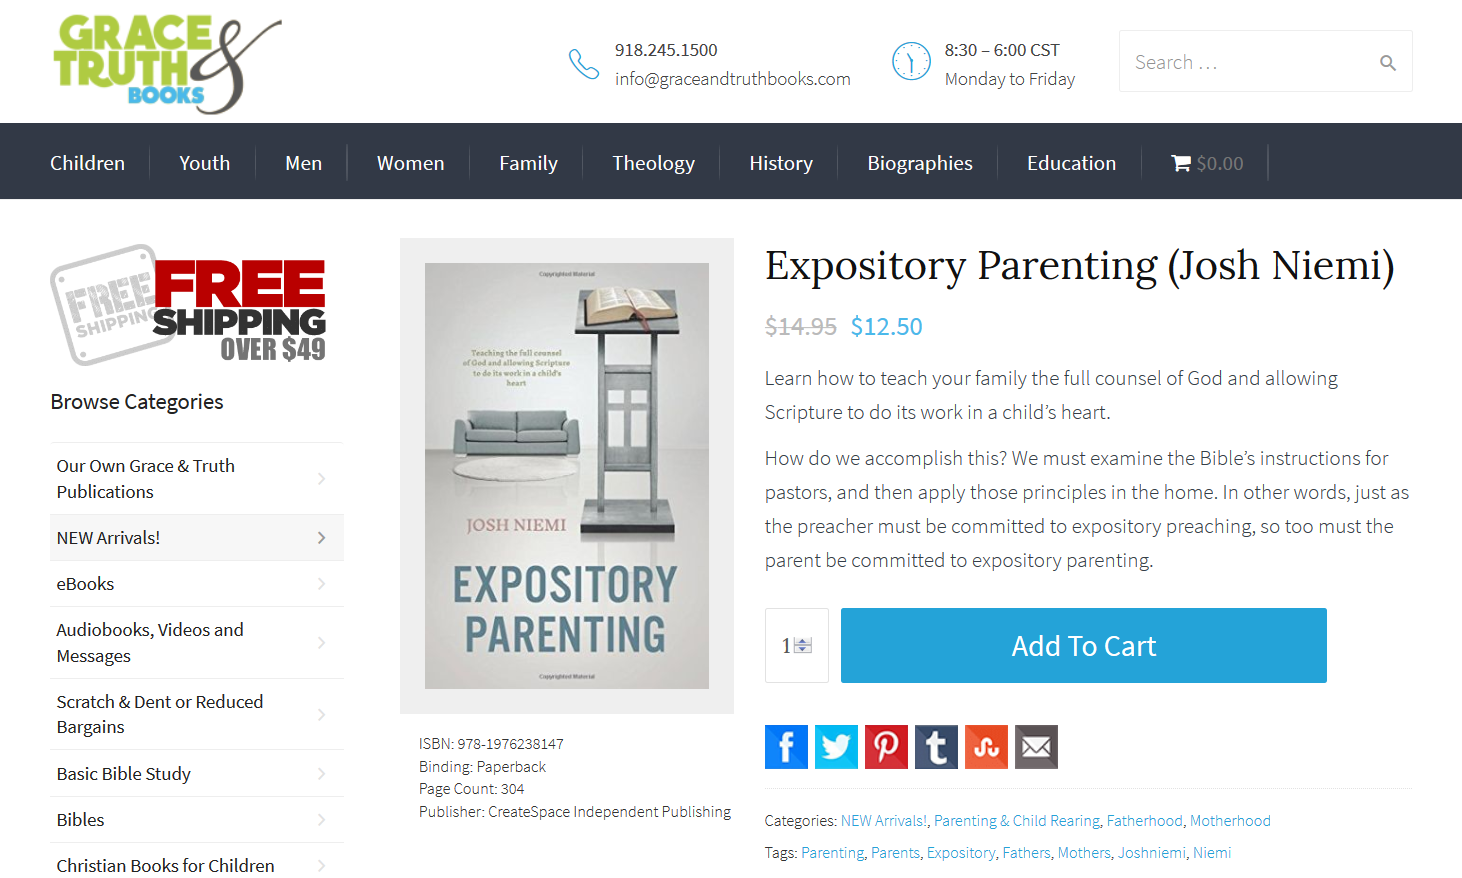 Screenshot-2018-4-4 Expository Parenting Josh Niemi Christian parents Grace Truth.png